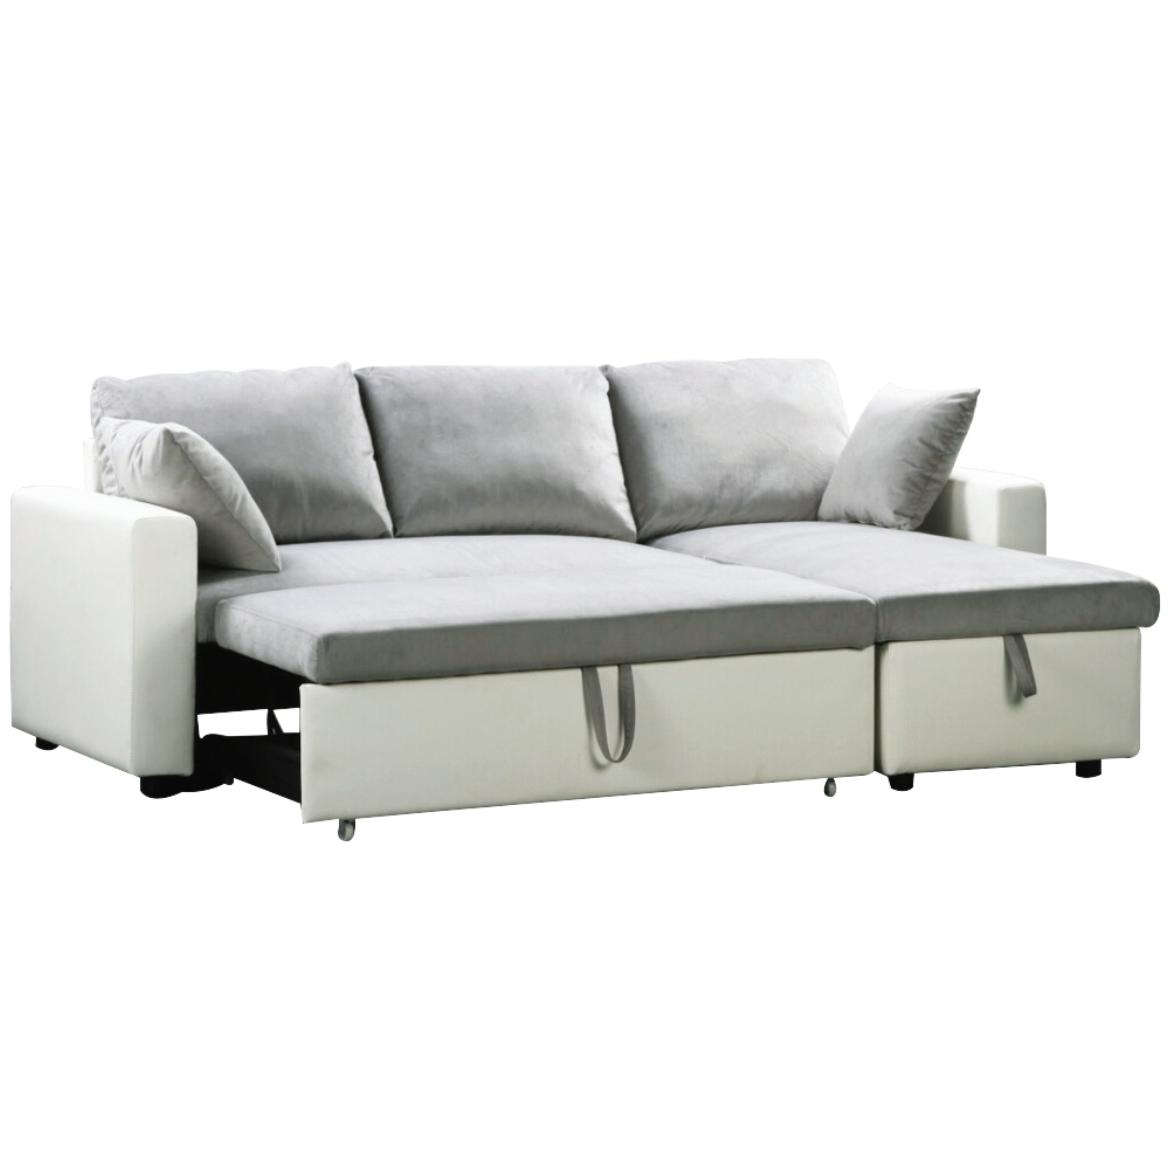 Reversible Corner Sofa Bed White Pu Microlfiber Grey